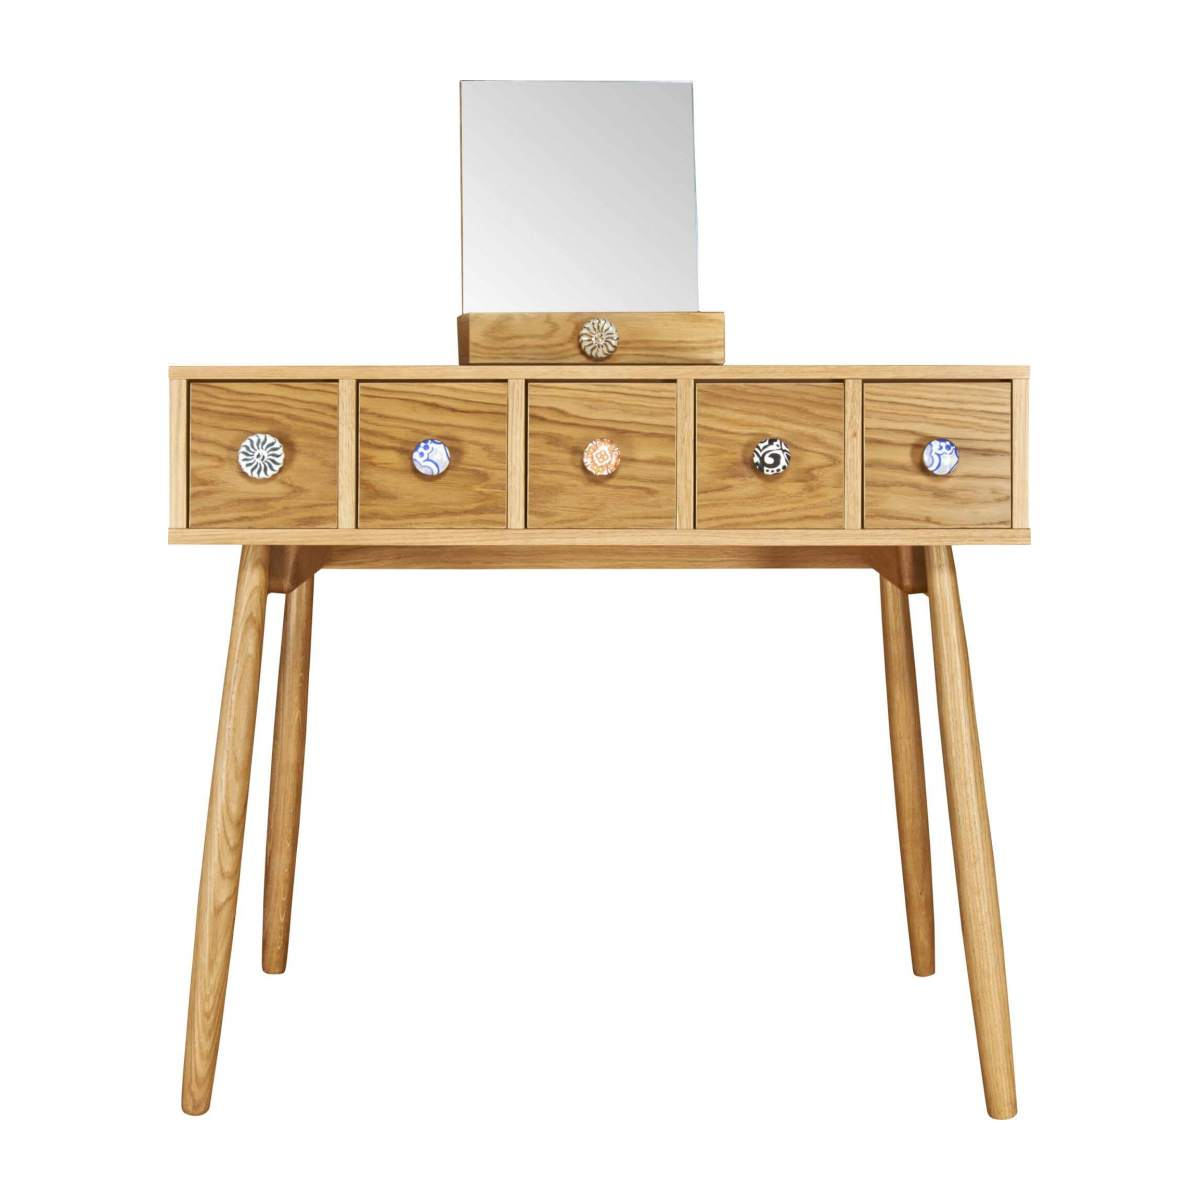 Mirrored 5 drawer dressing table n°3